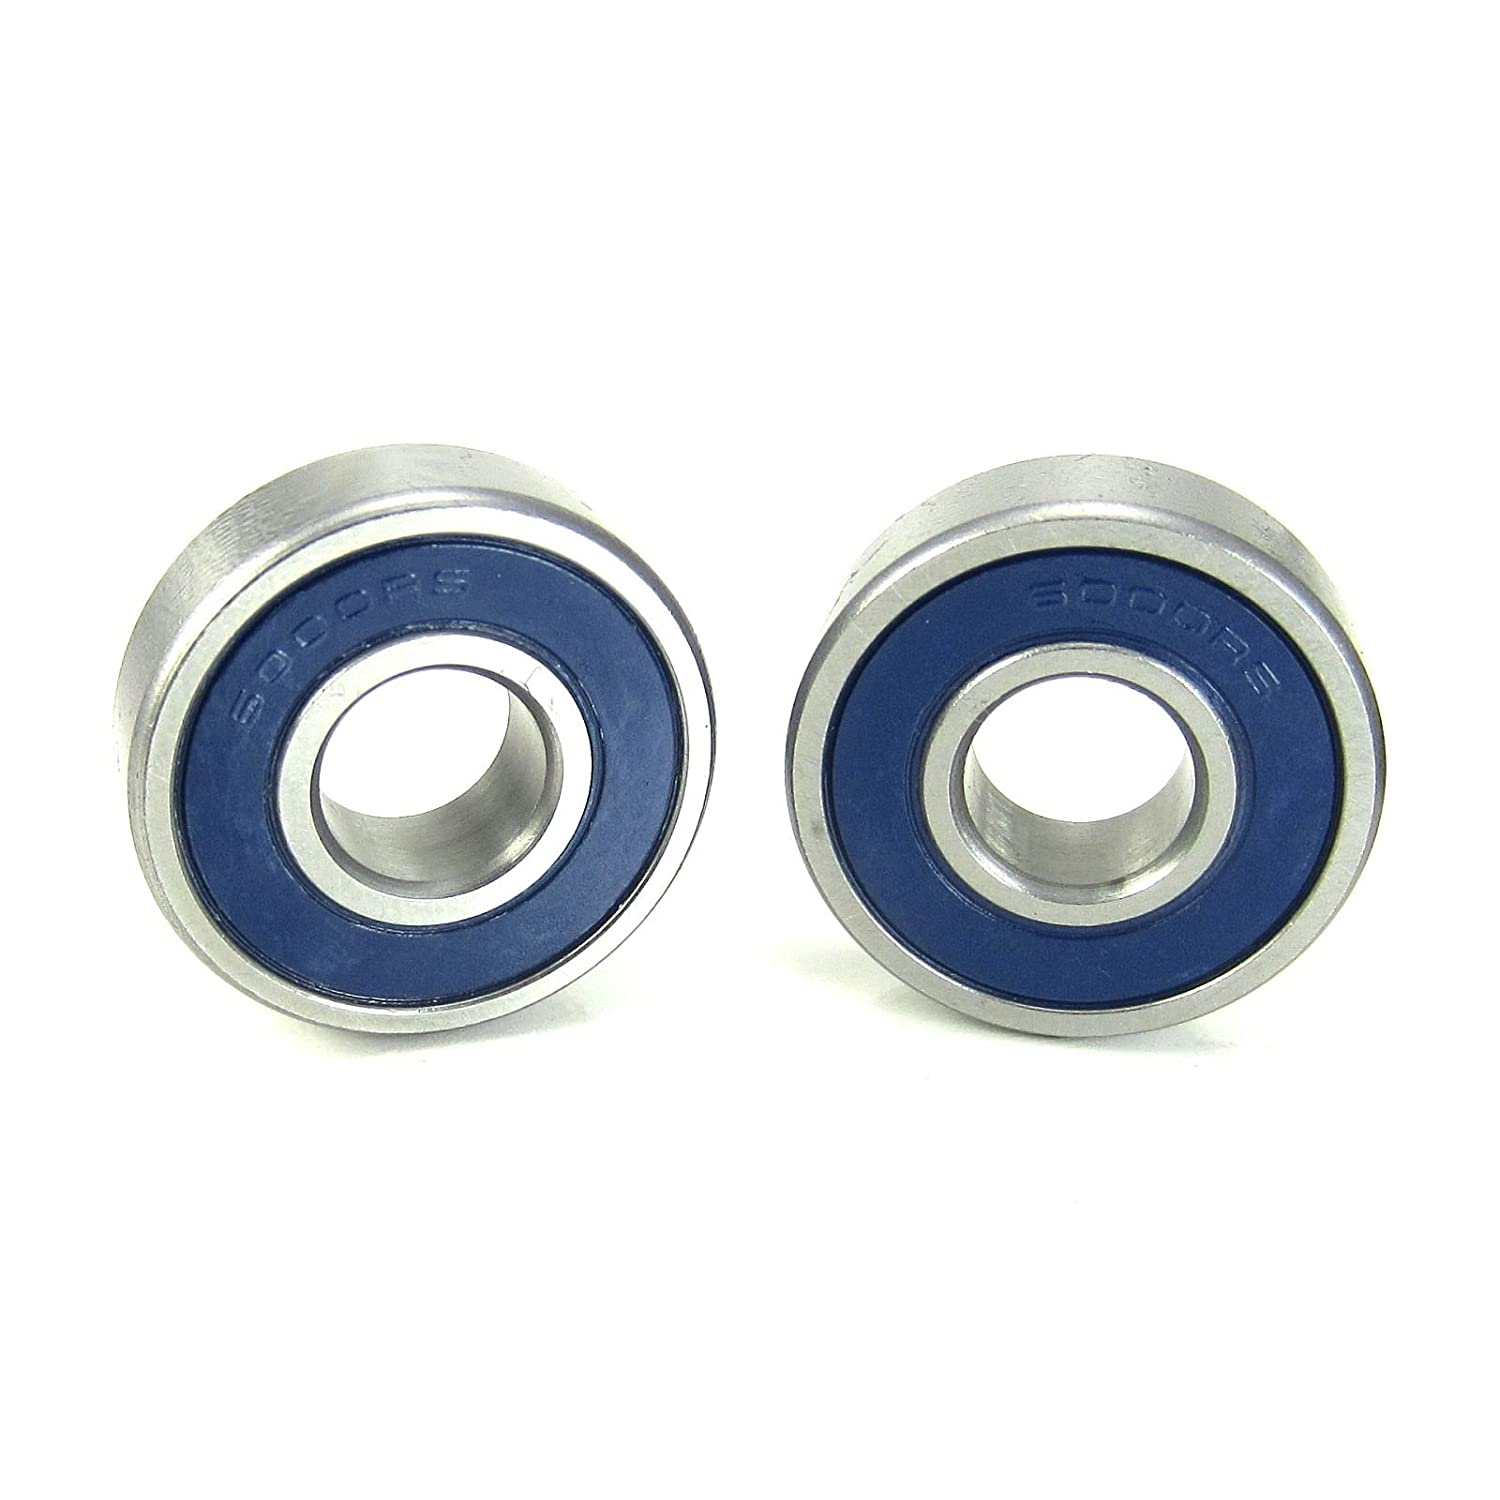 10x26x8mm Precision Ball Bearings ABEC 3 Blue Rubber Seals (2) TRB RC